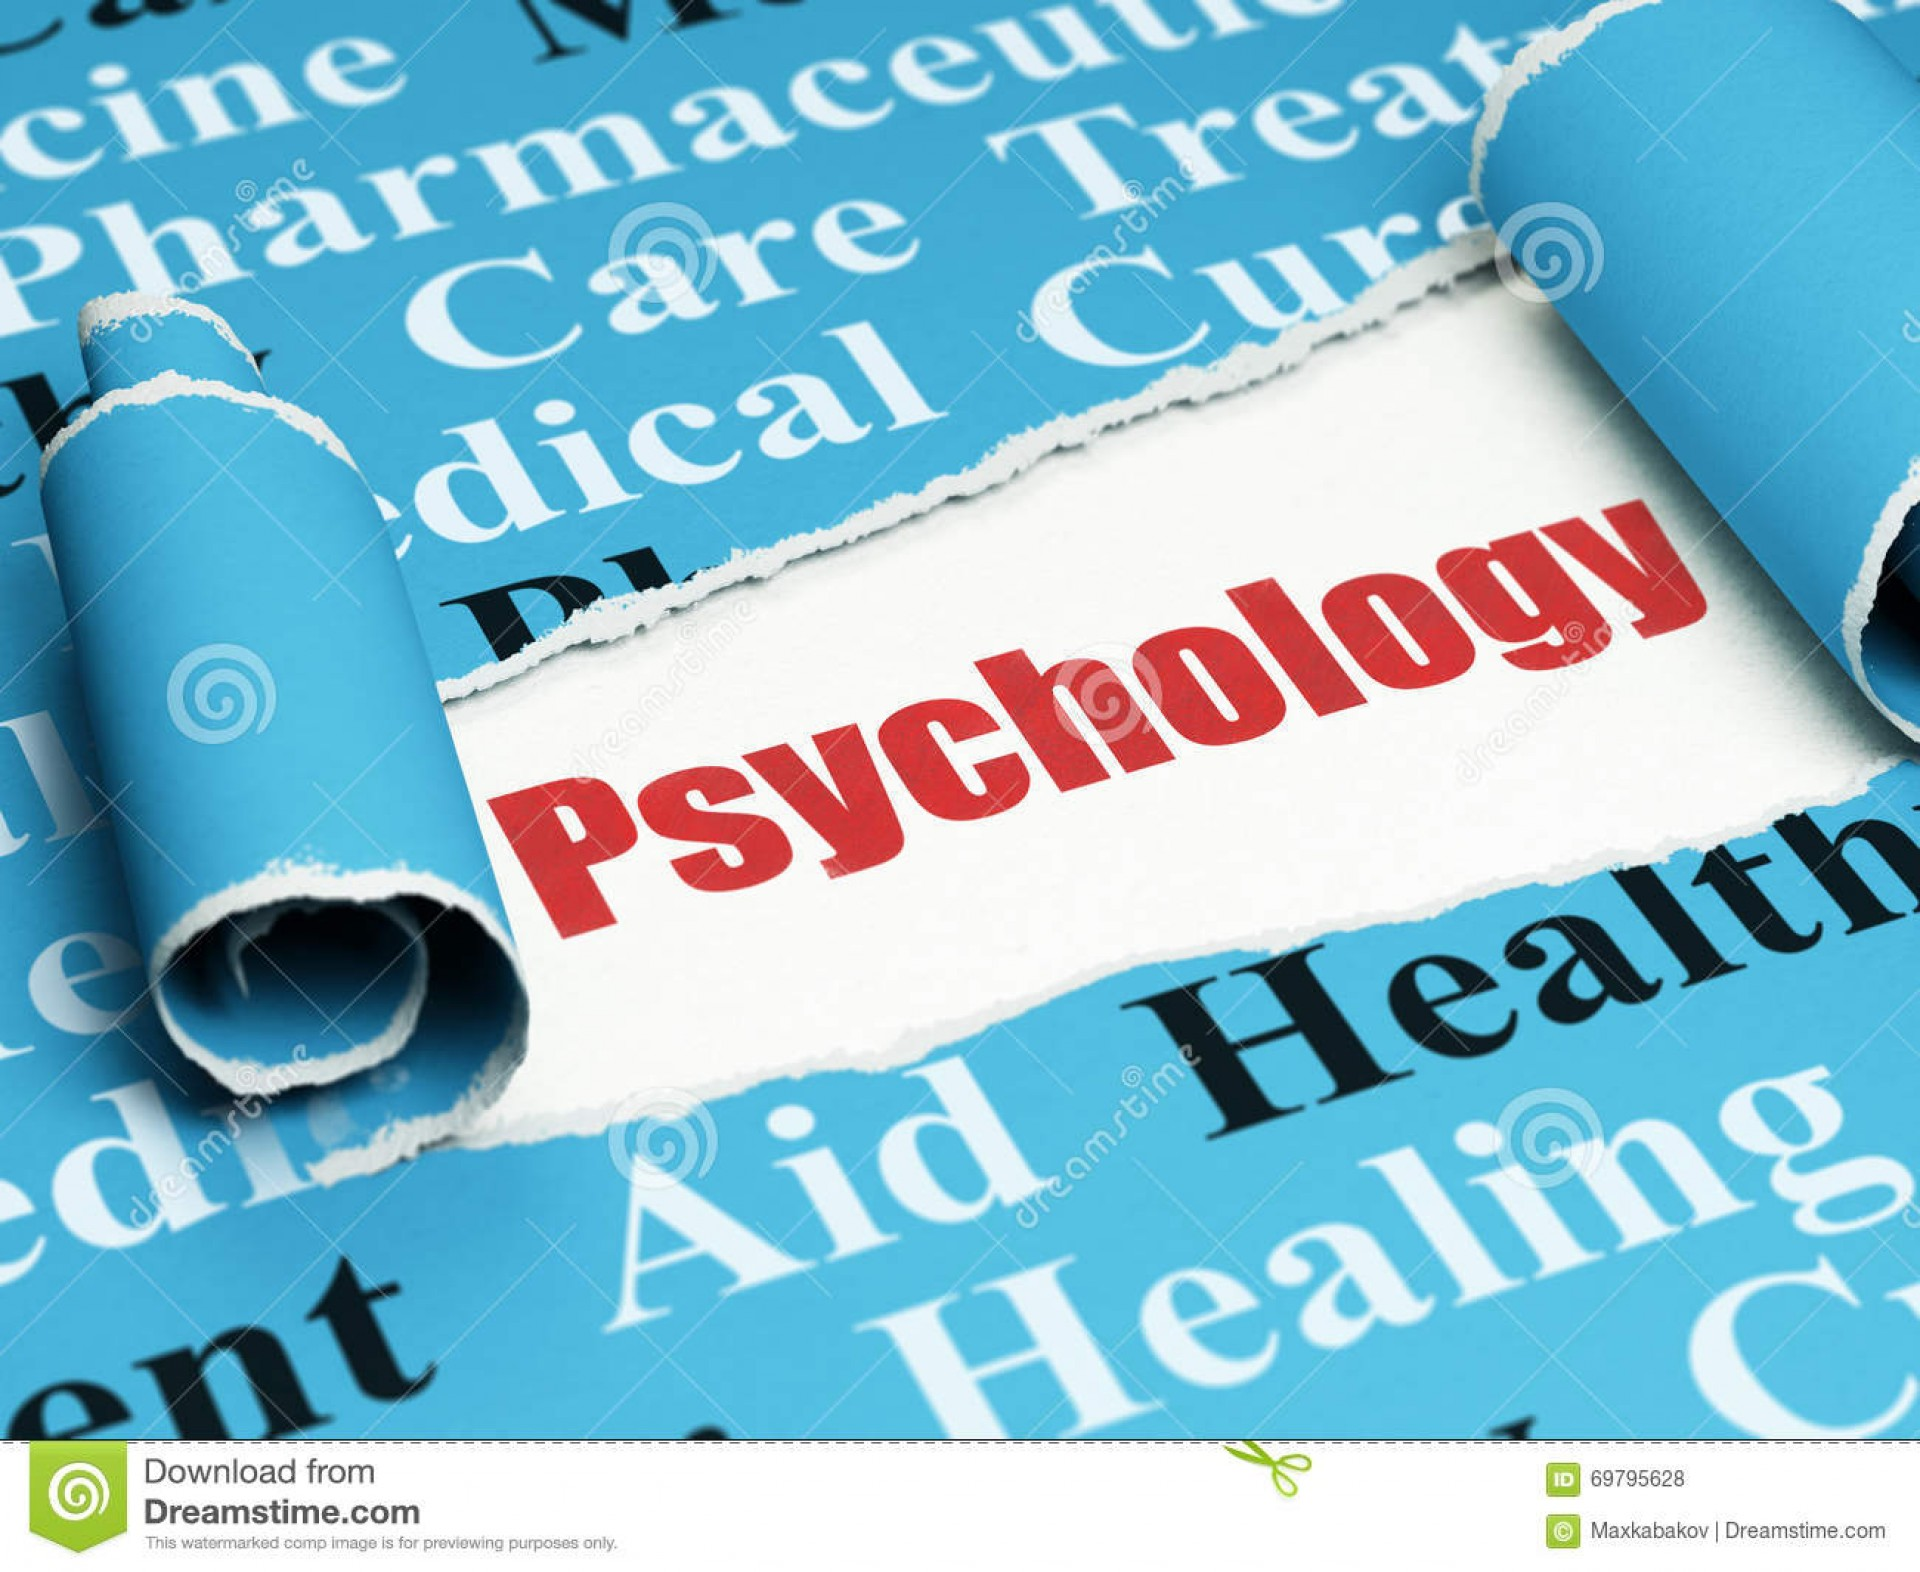 010 Research Paper Psychology On Dreams Health Concept Red Text Under Piece Torn Curled Blue Tag Cloud Rendering Singular Articles 1920